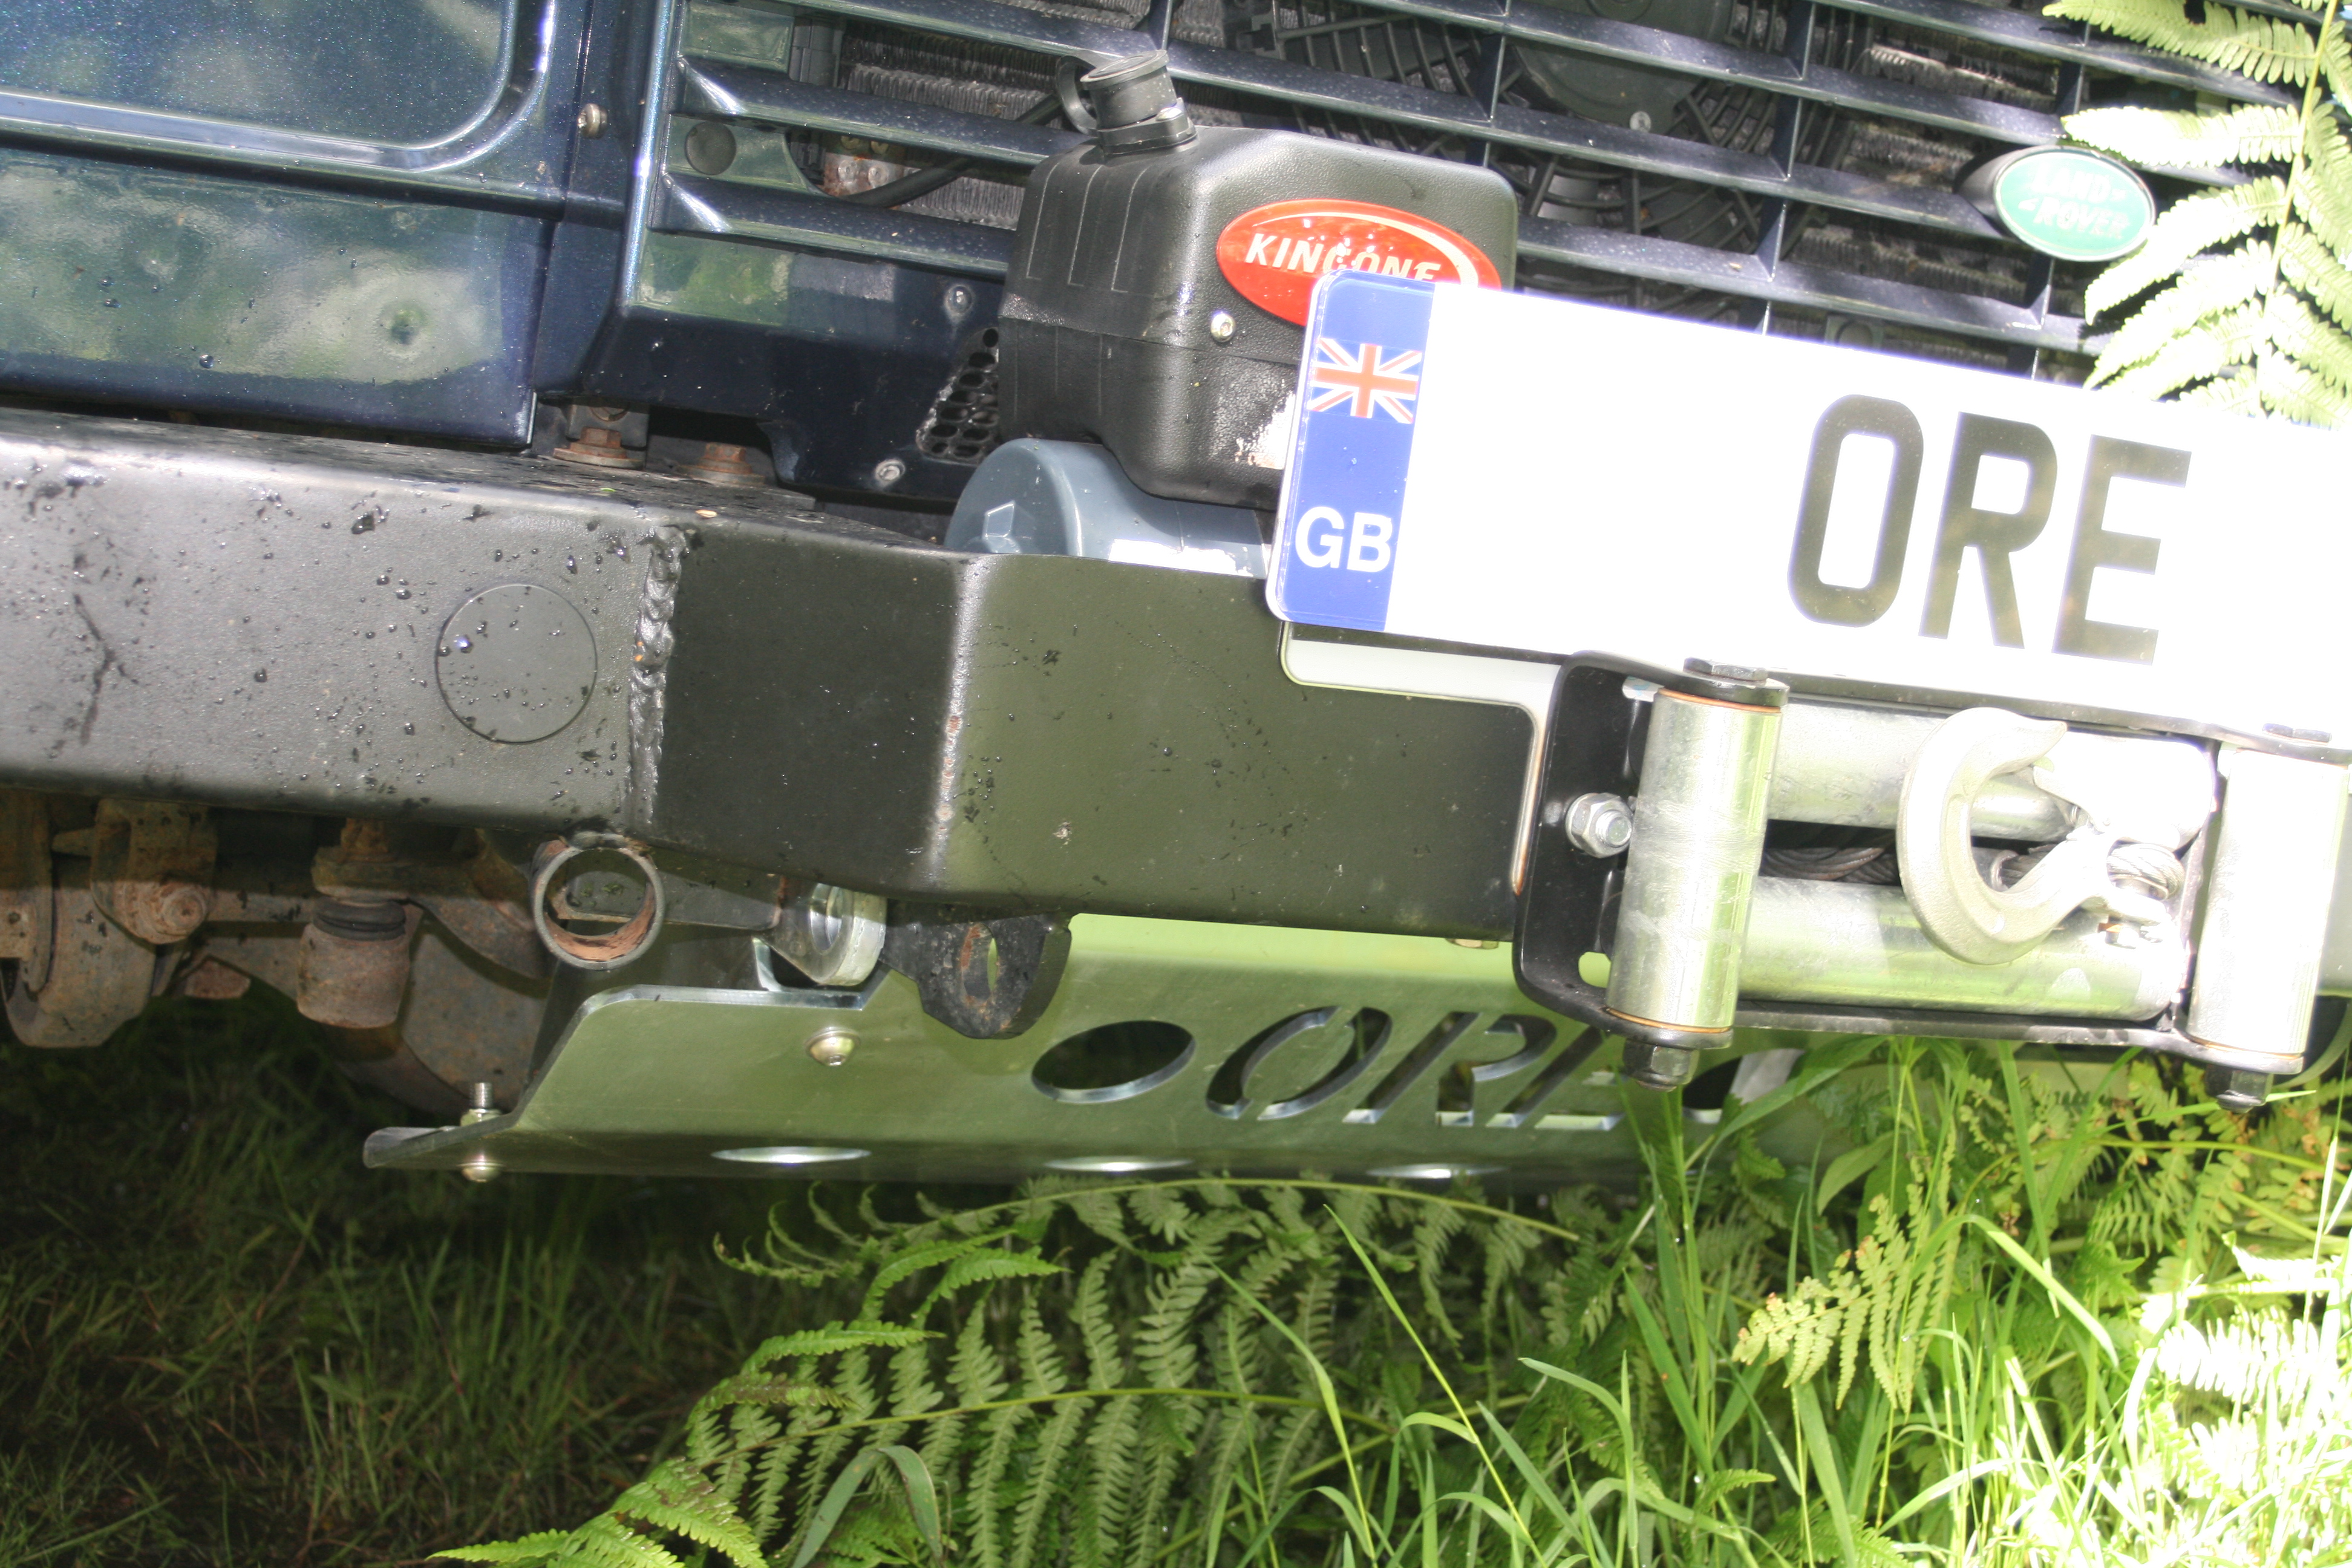 ORE, OakRidge engineering, steering guard, ore4x4, ore4x4uk, land rover defender, defender accessori